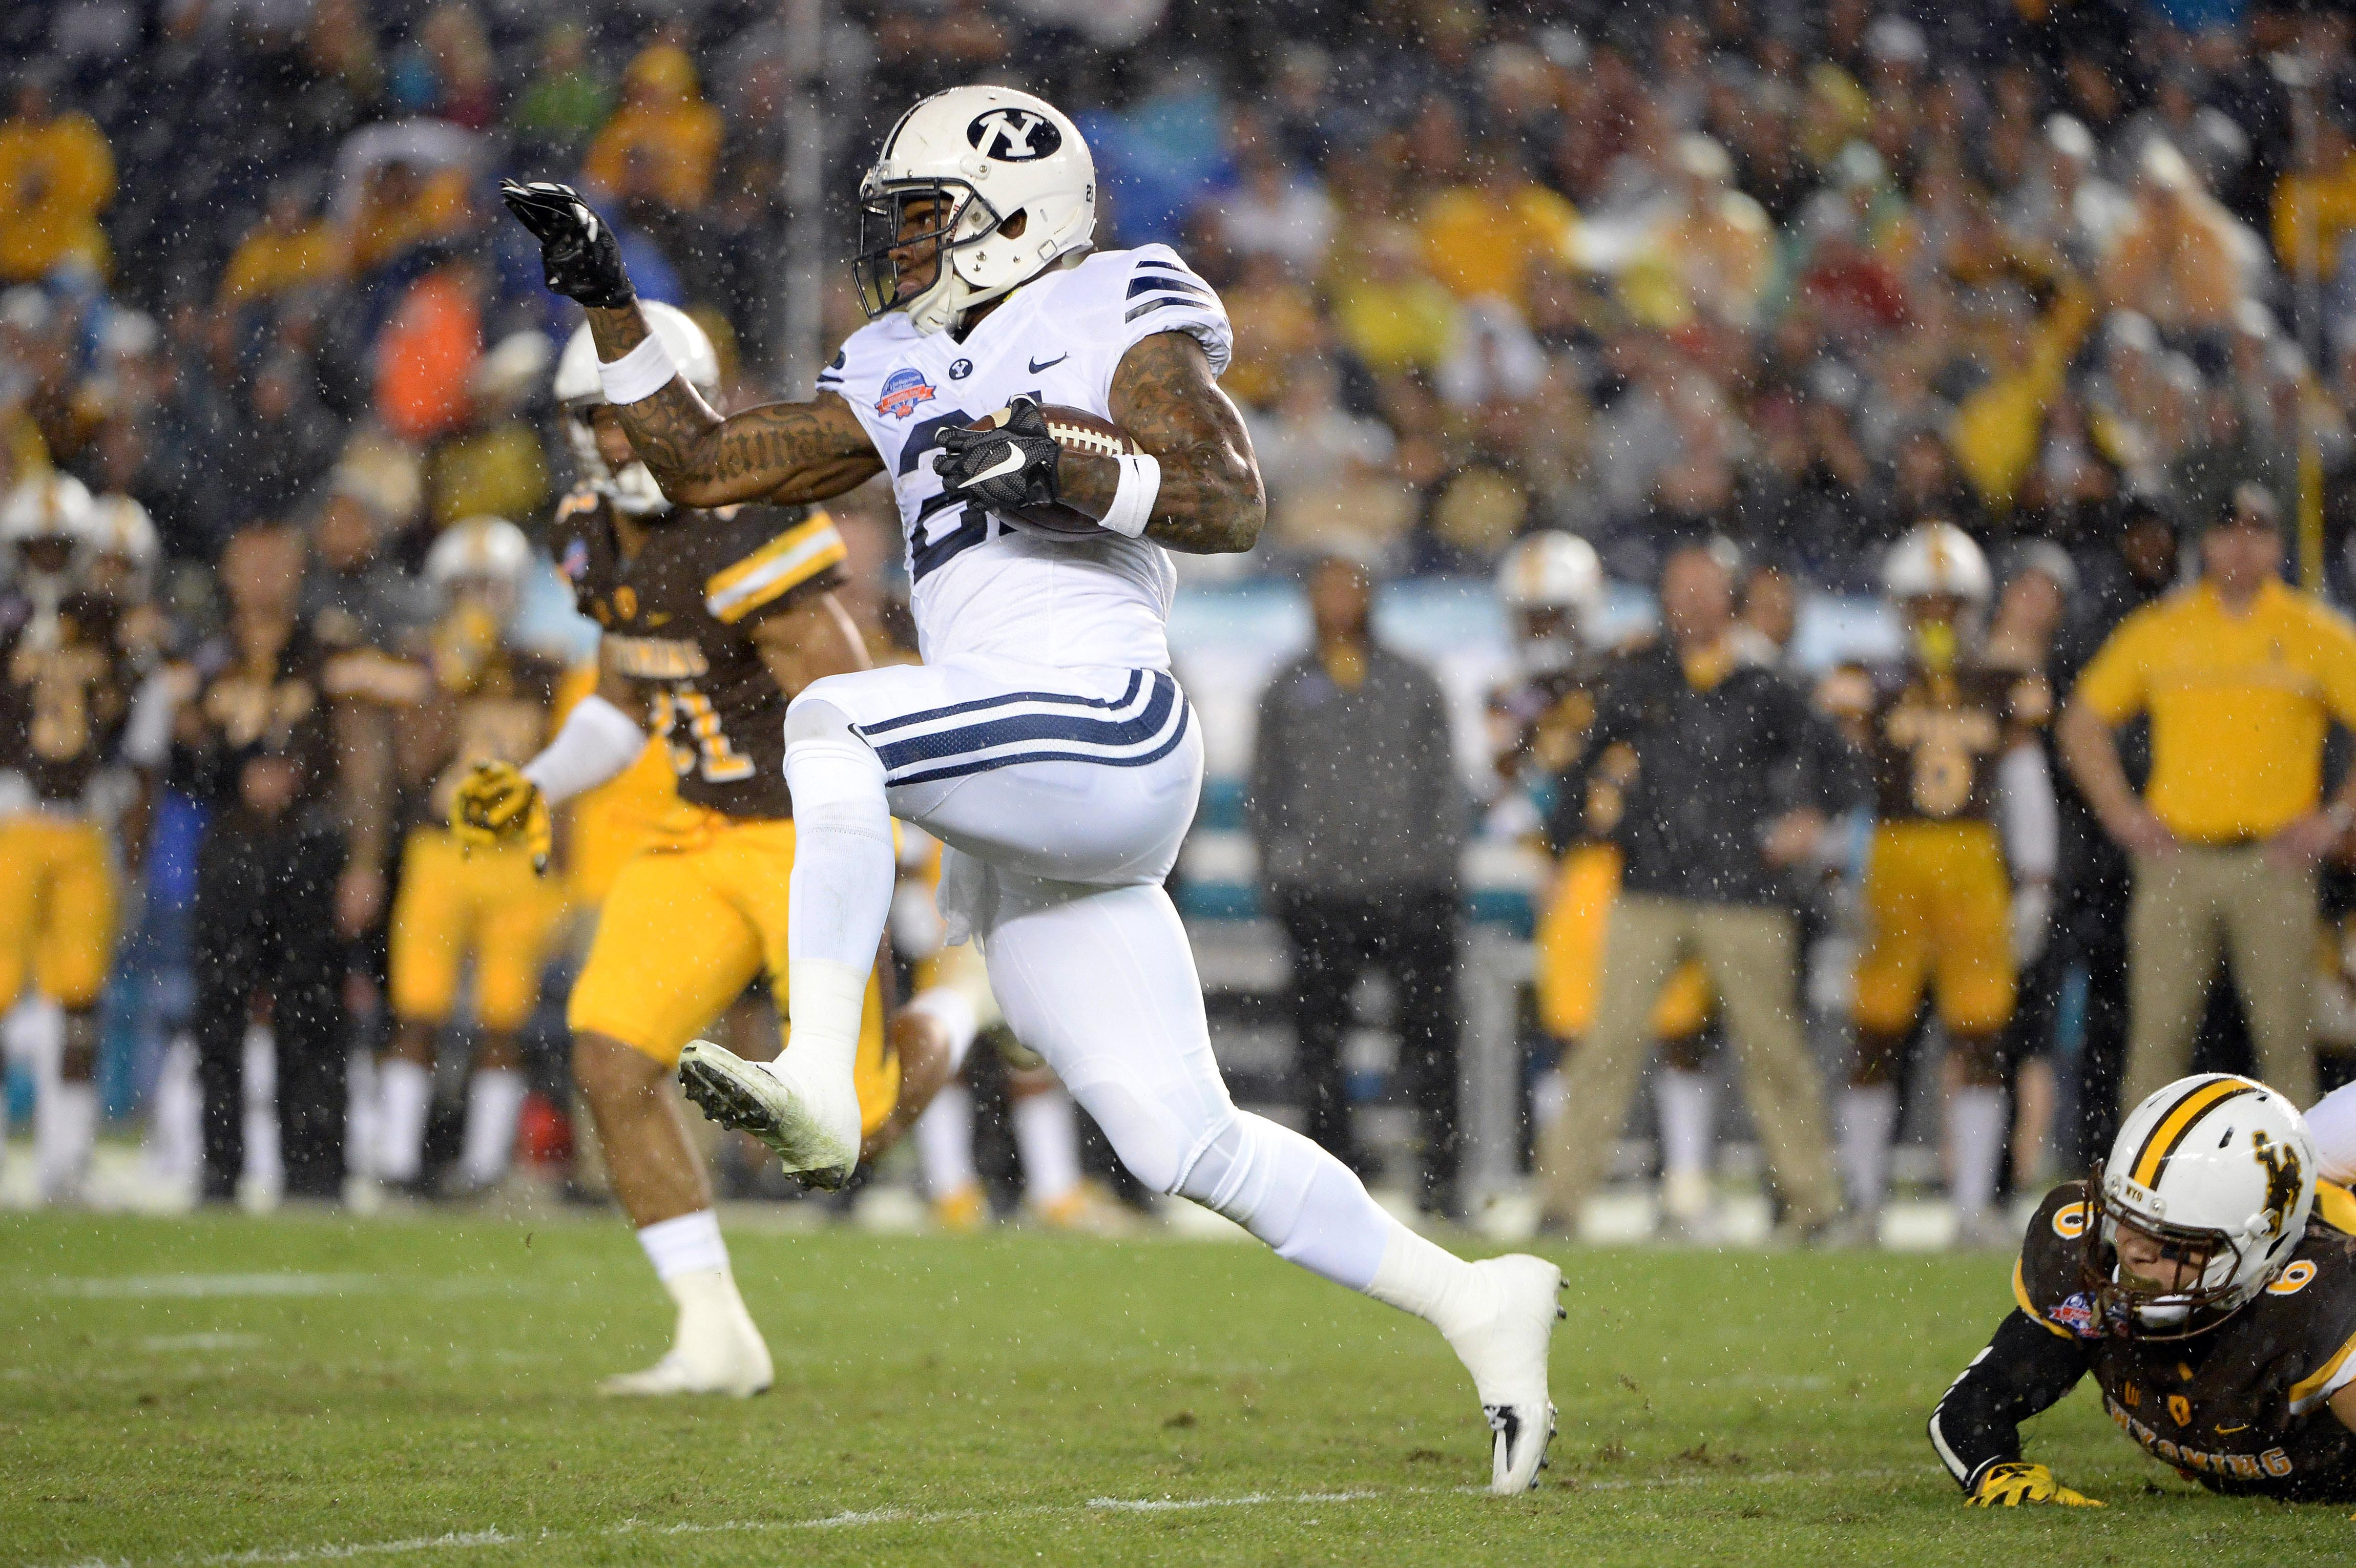 9761221-ncaa-football-poinsettia-bowl-brigham-young-vs-wyoming